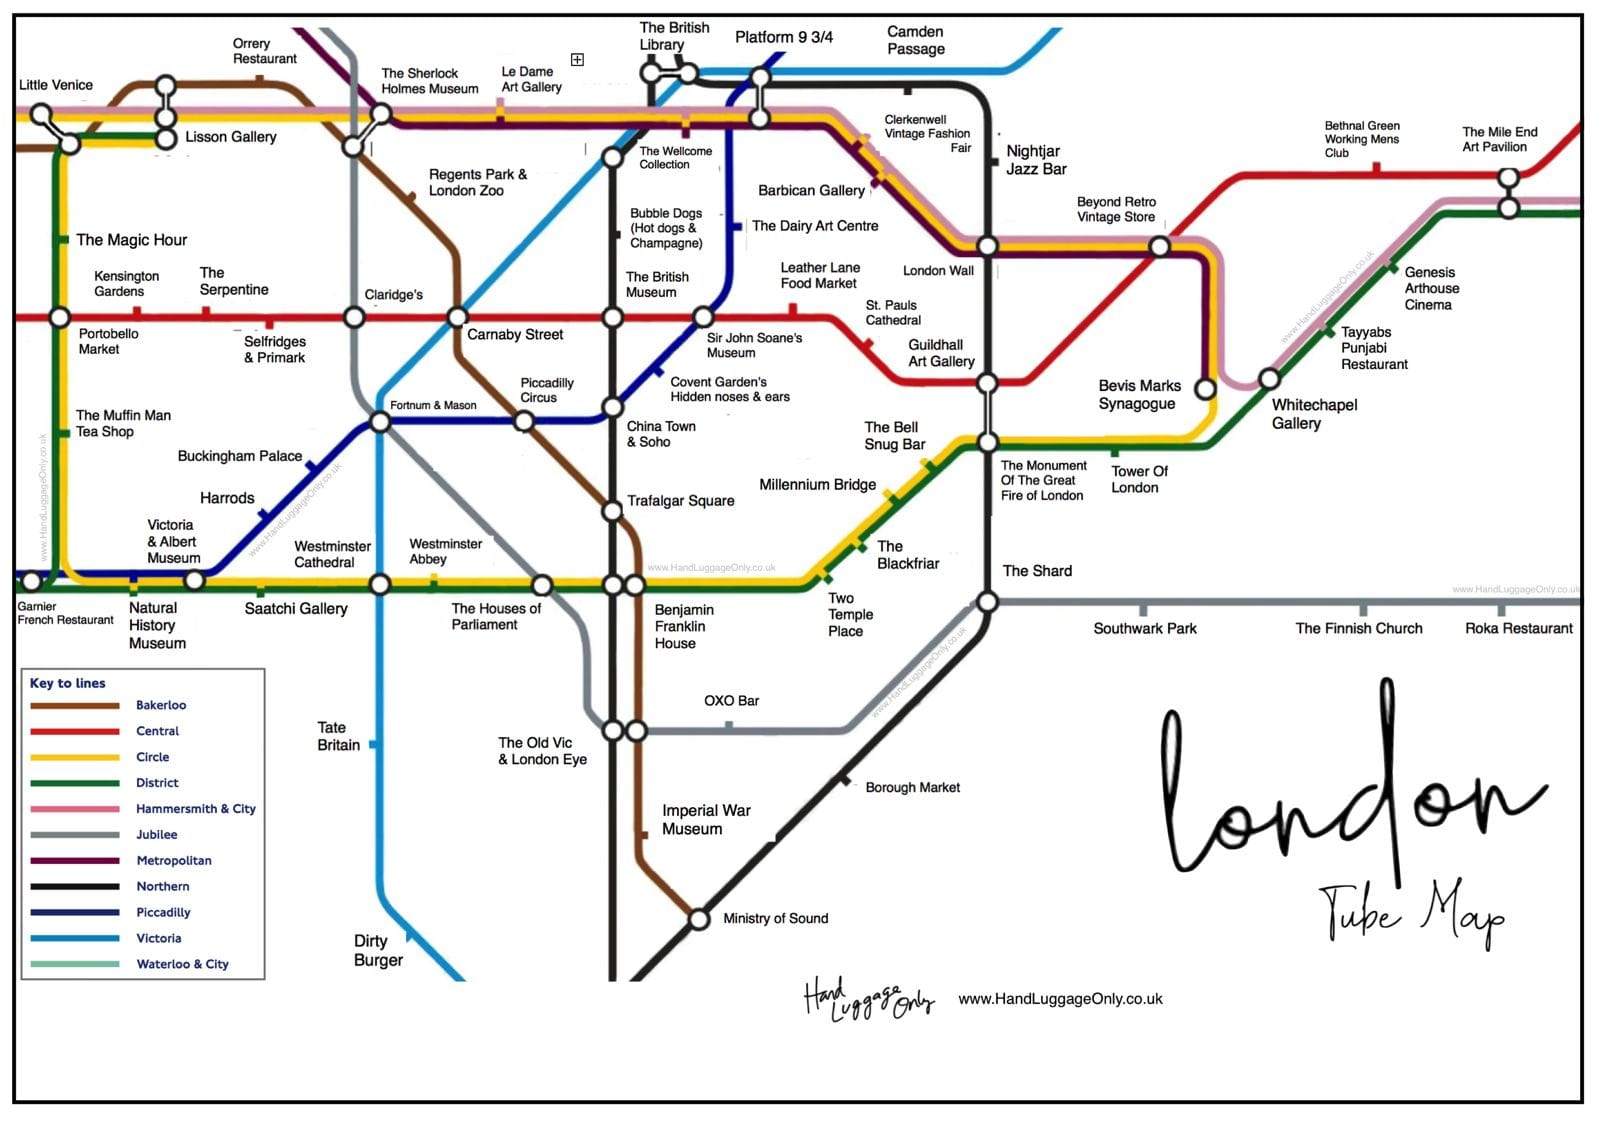 London Underground Map: What To See At Each Stop - Hand ...